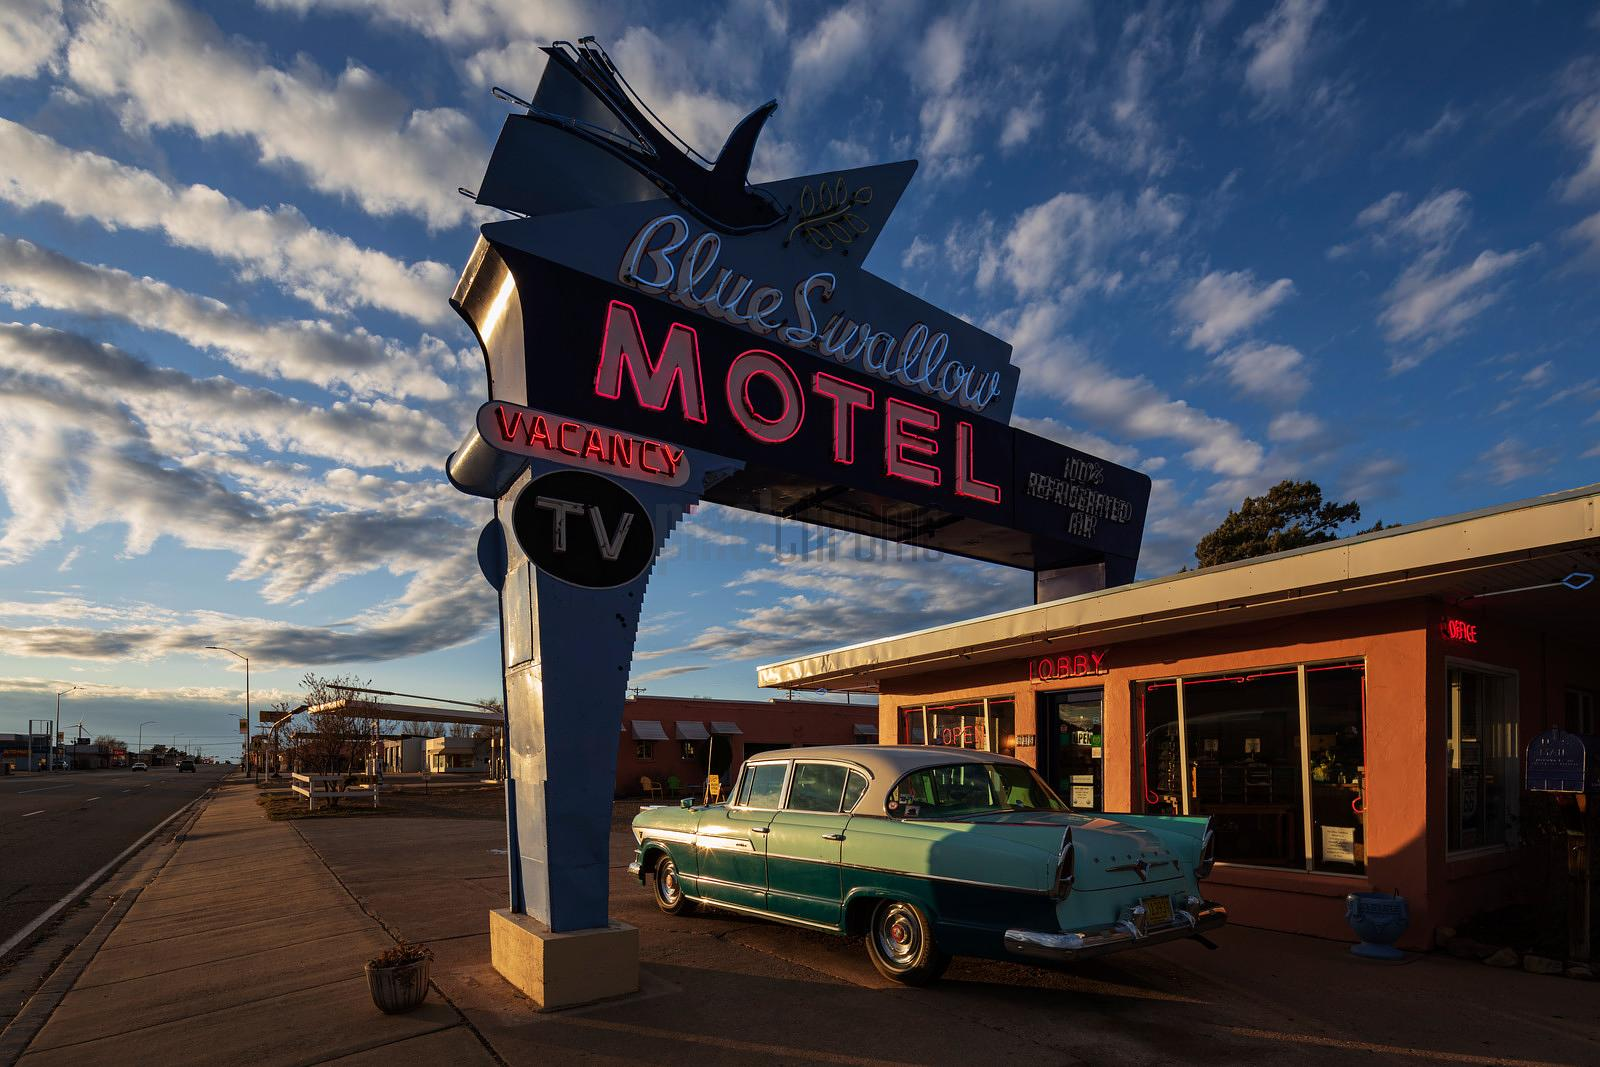 Blue Swallow Motel at Sunset